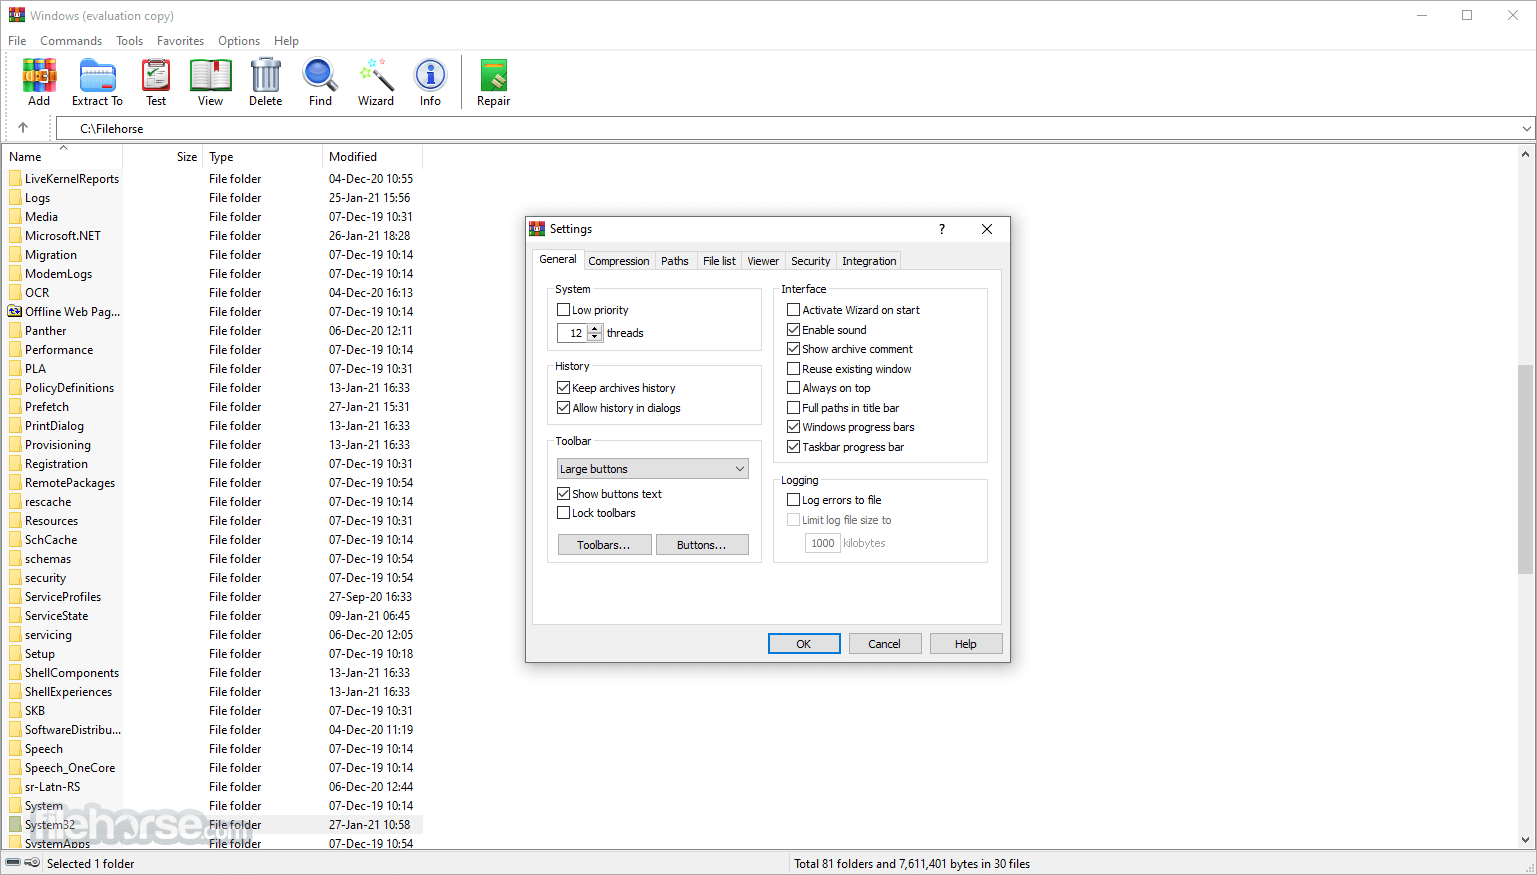 WinRAR 5.61 Beta 1 (32-bit) Screenshot 4